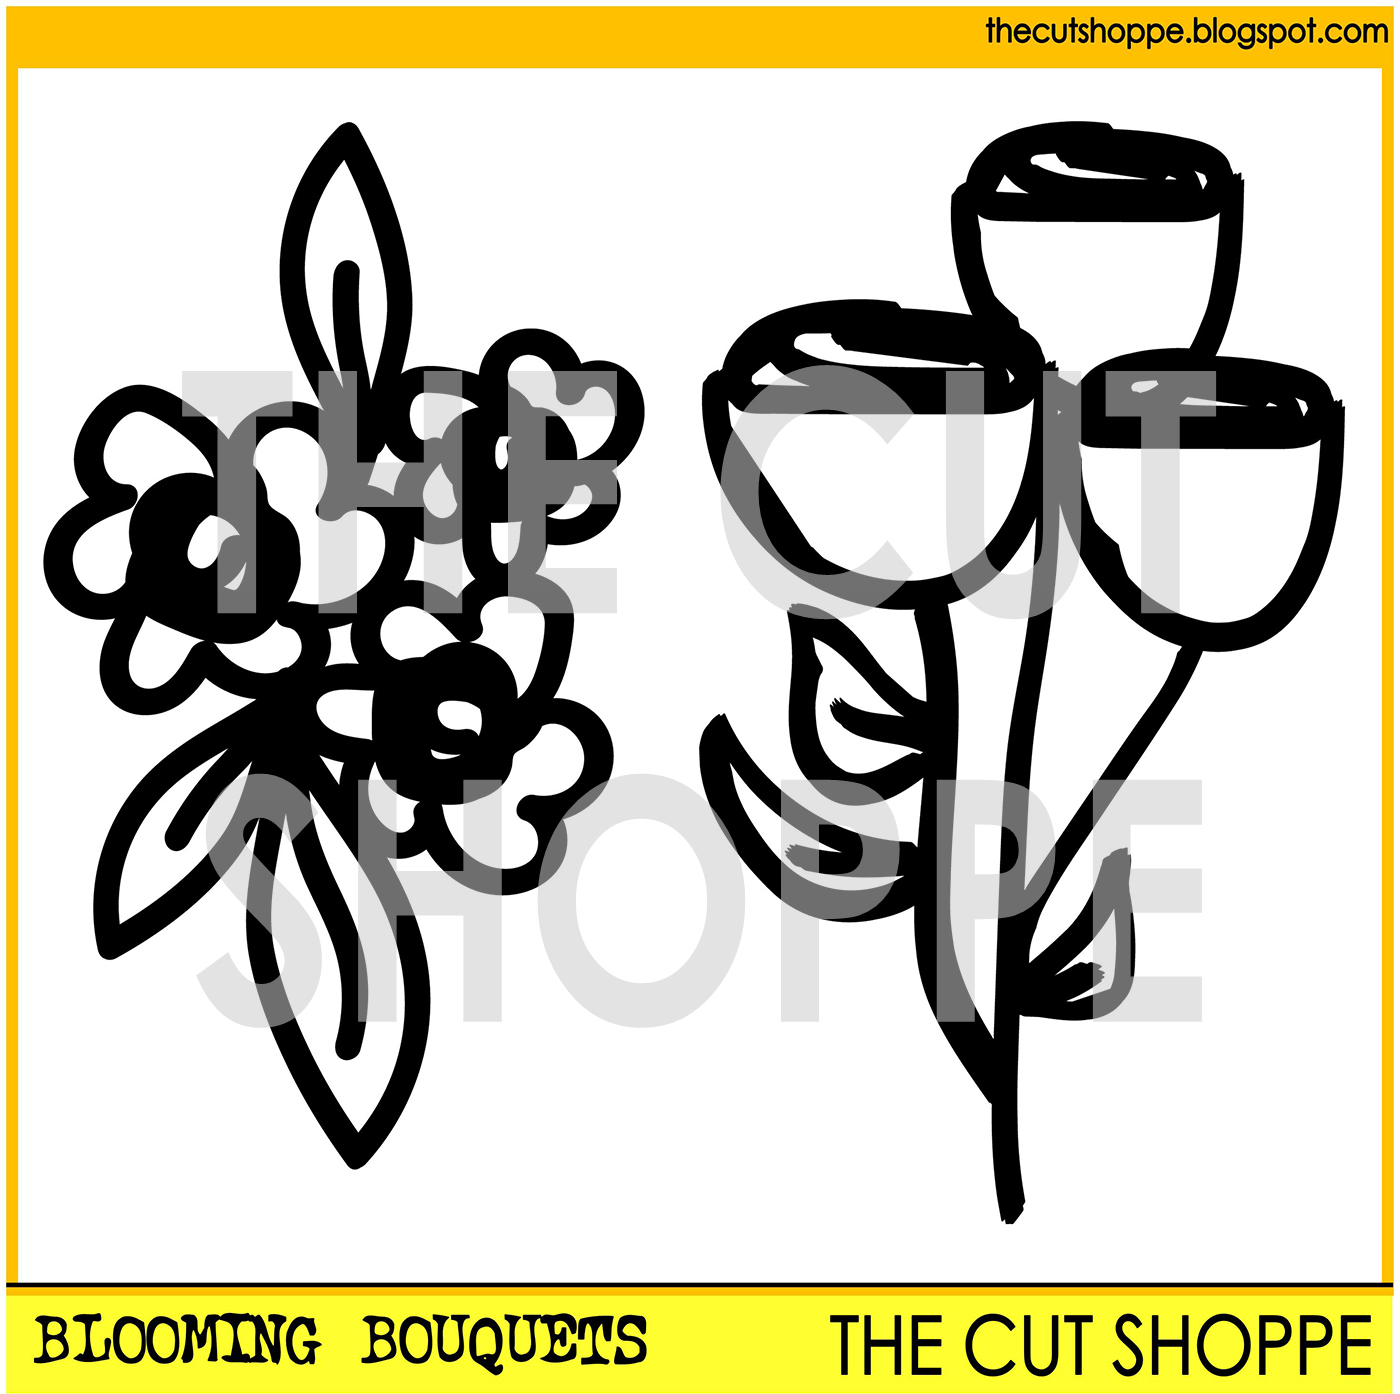 https://www.etsy.com/listing/228411018/the-blooming-bouquets-cut-file-consists?ref=shop_home_active_4